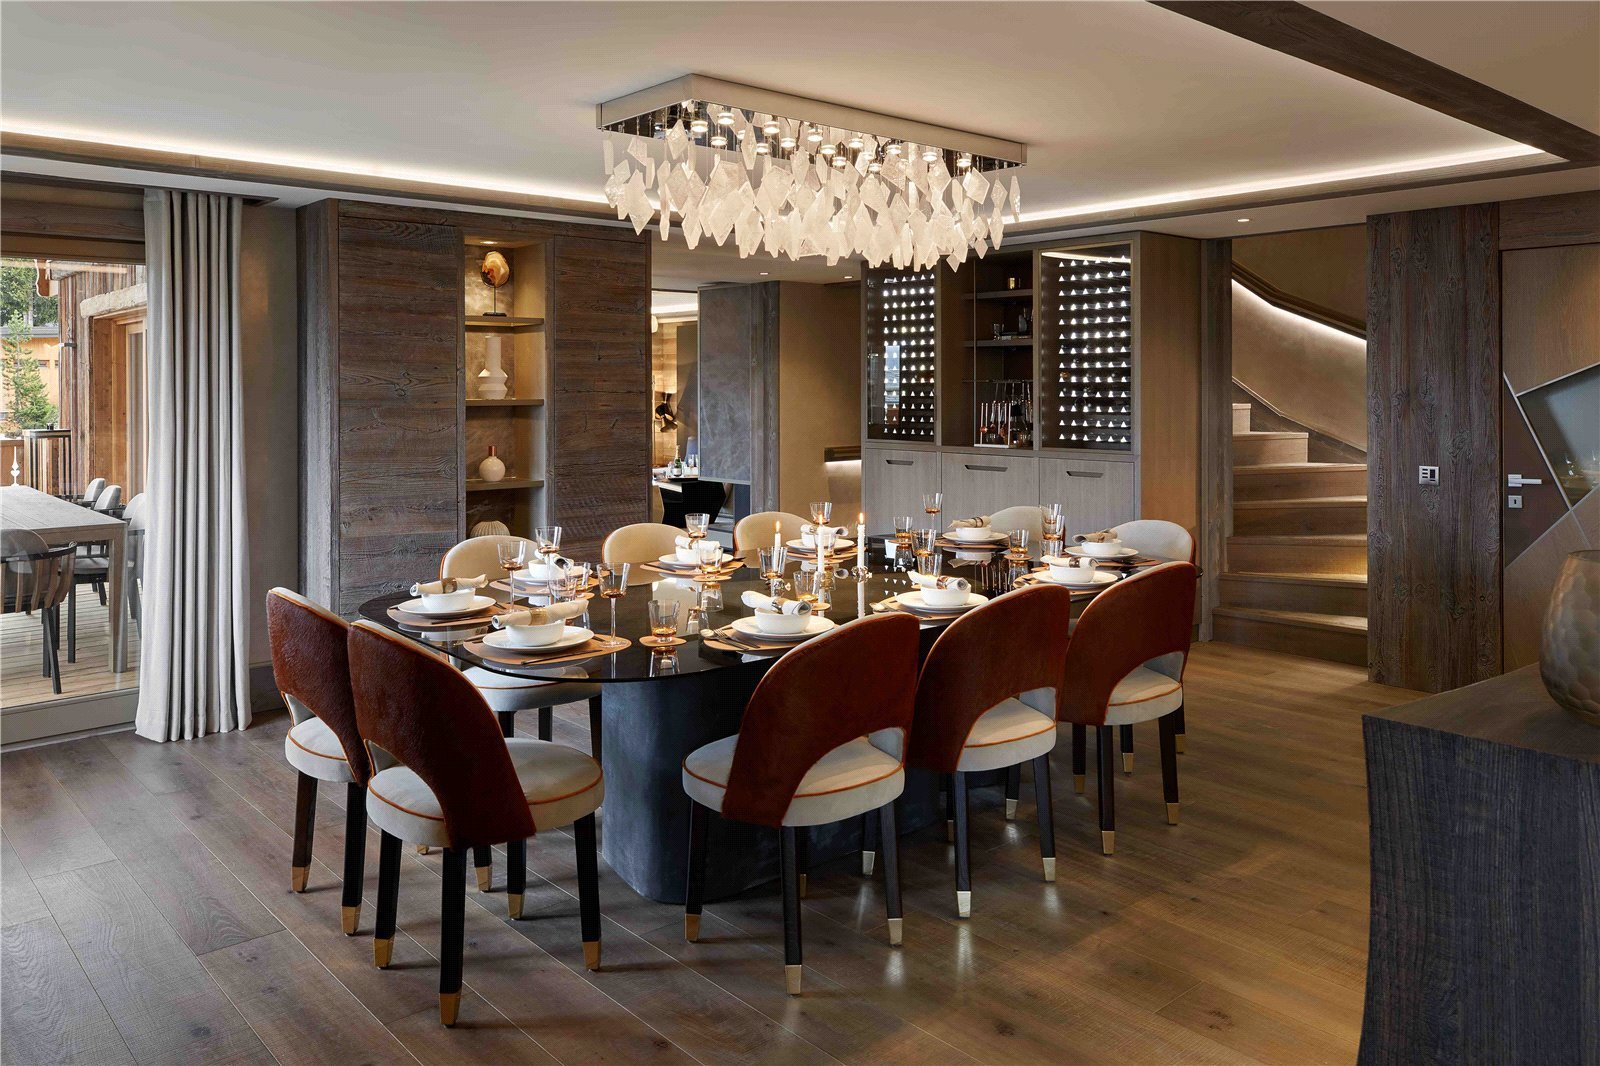 Buying Villa Courchevel Exquisite 5 bedroom chalet set in the heart of the prestigious and exclusive ski resort Six Senses in the French Alps.